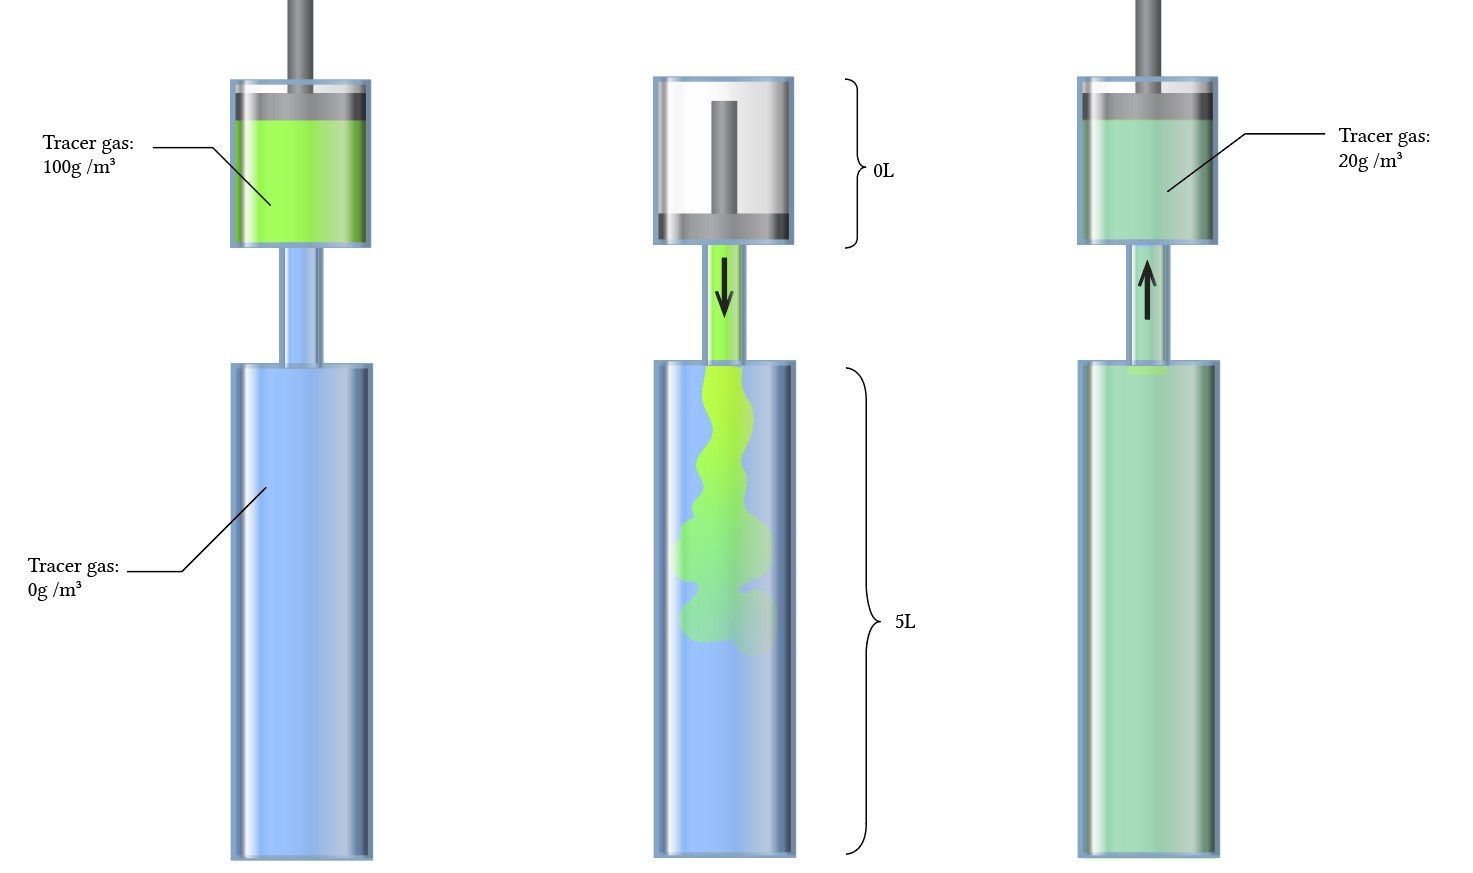 tracer gas dilution method of FRC measurement